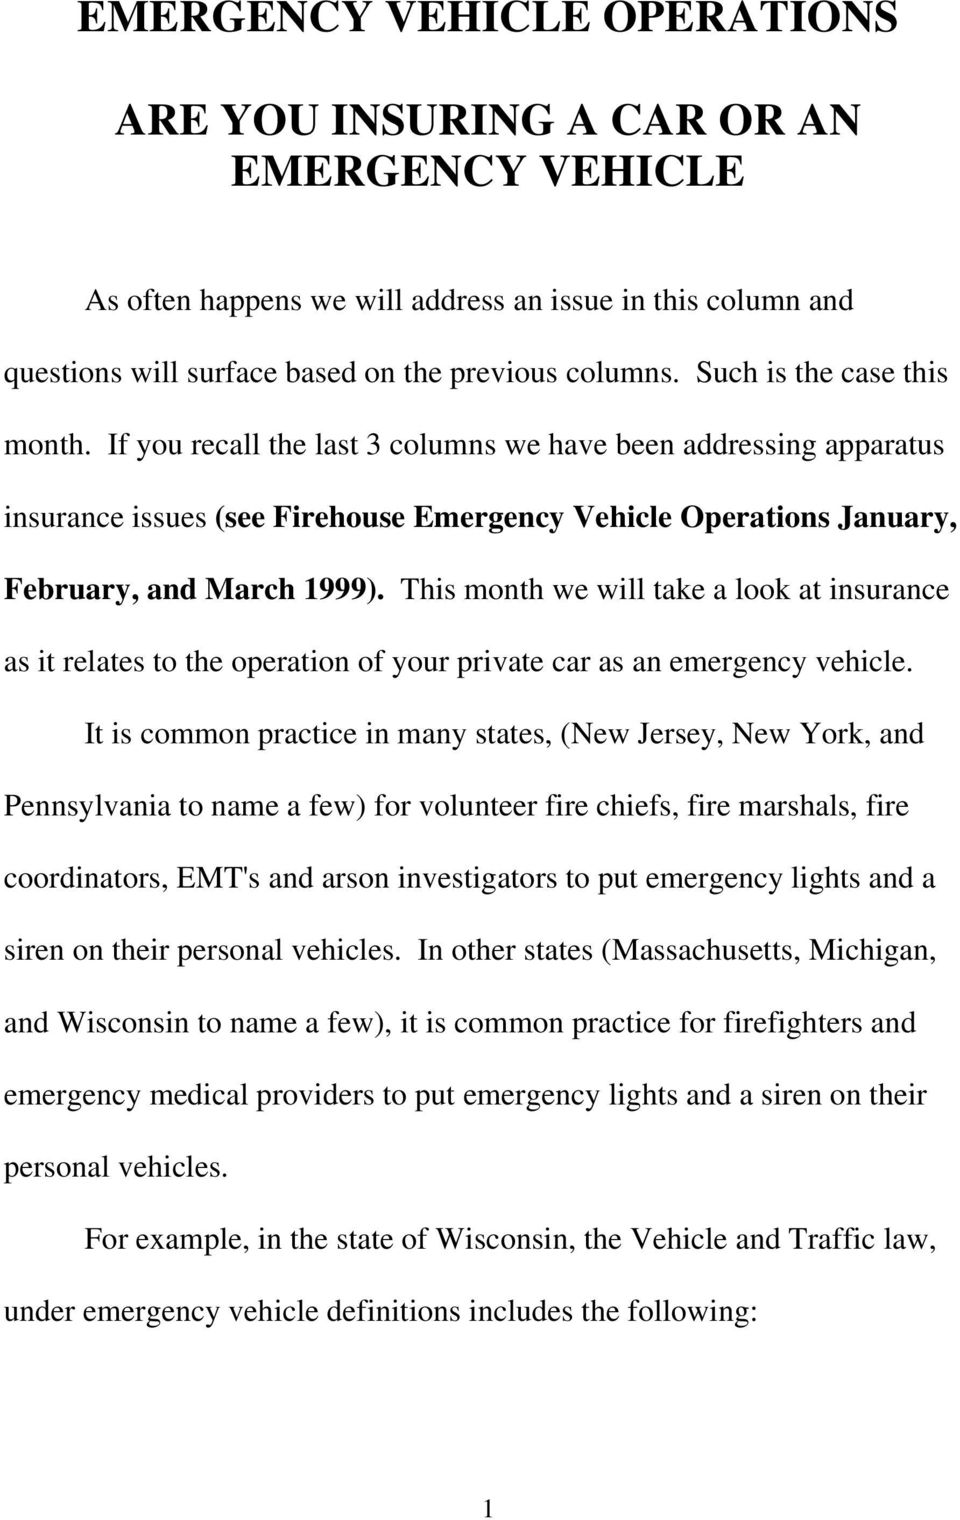 This month we will take a look at insurance as it relates to the operation of your private car as an emergency vehicle.